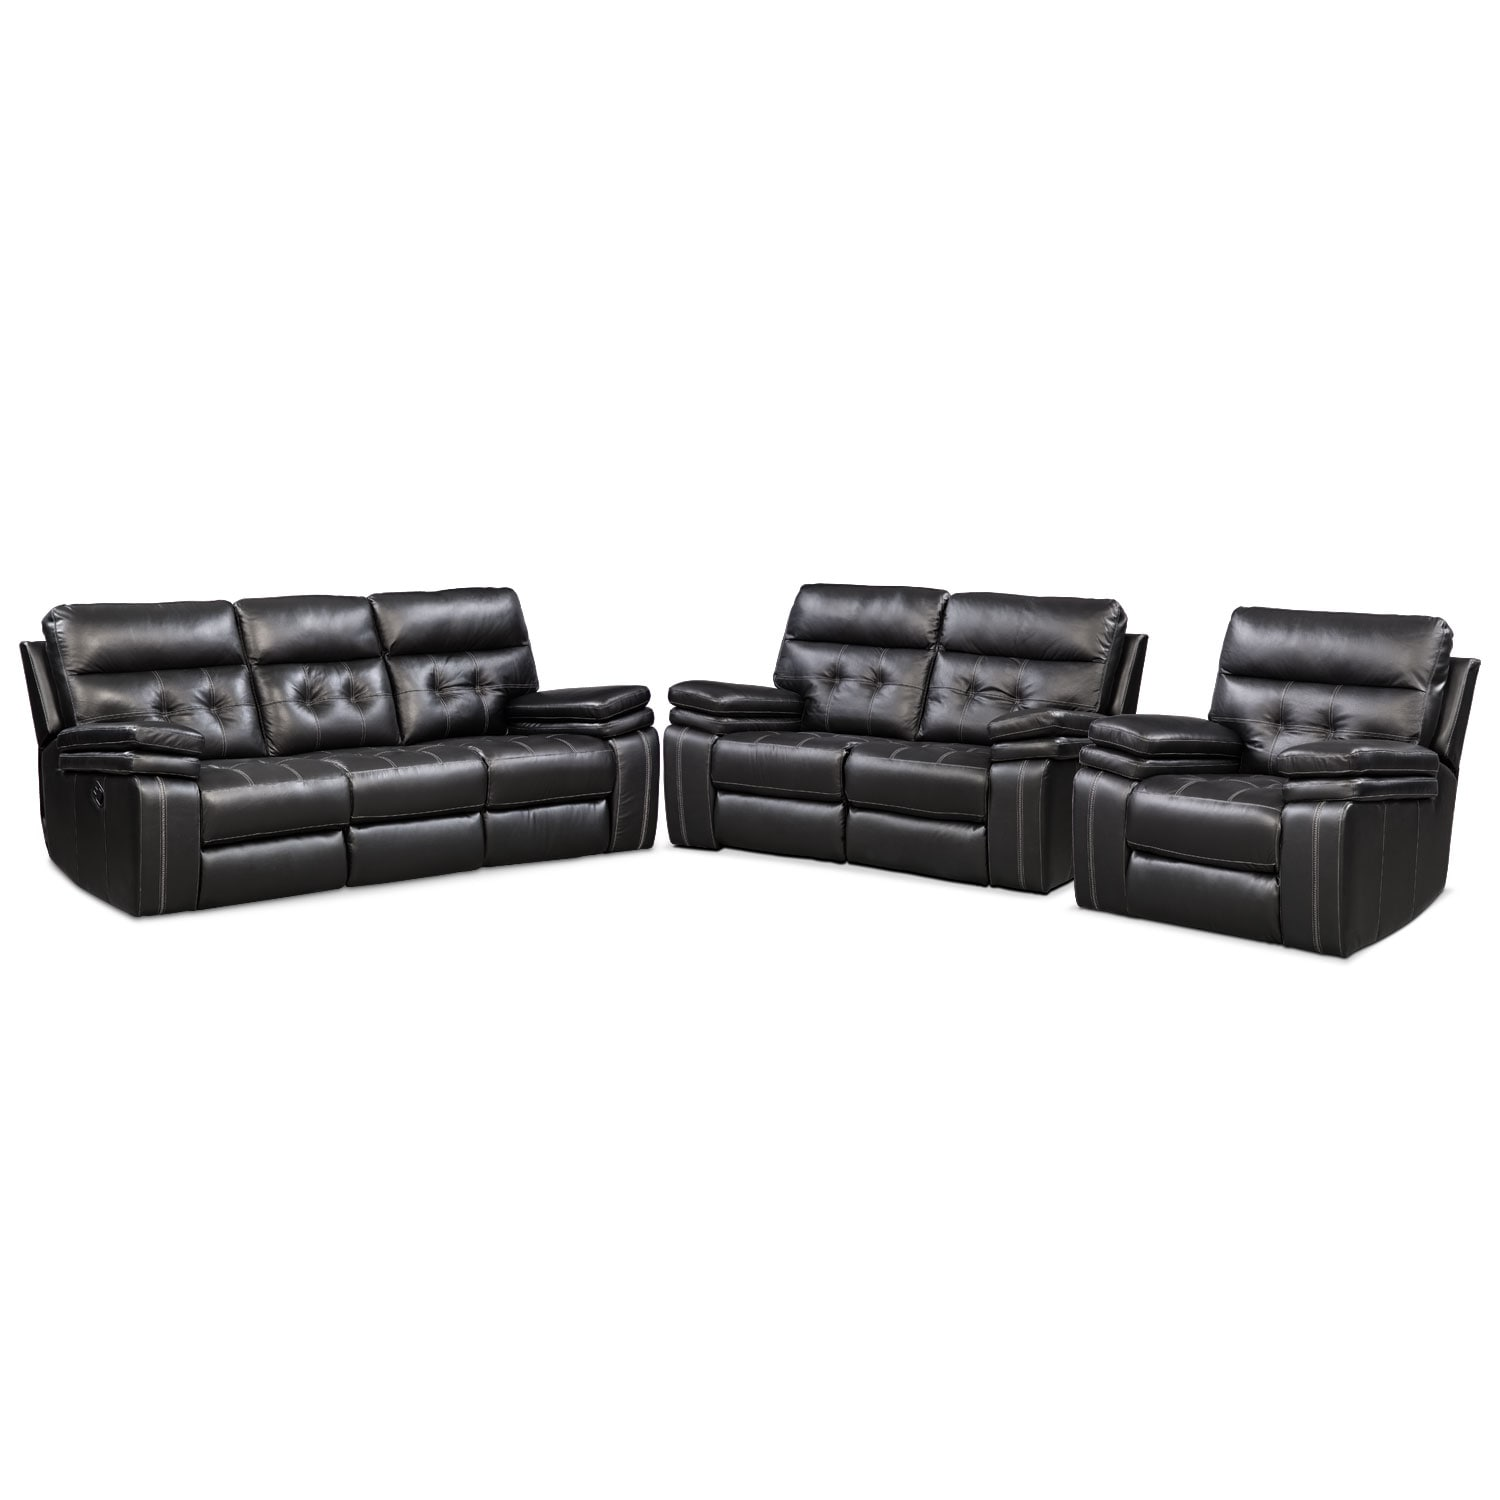 Brisco Manual Reclining Sofa Reclining Loveseat And